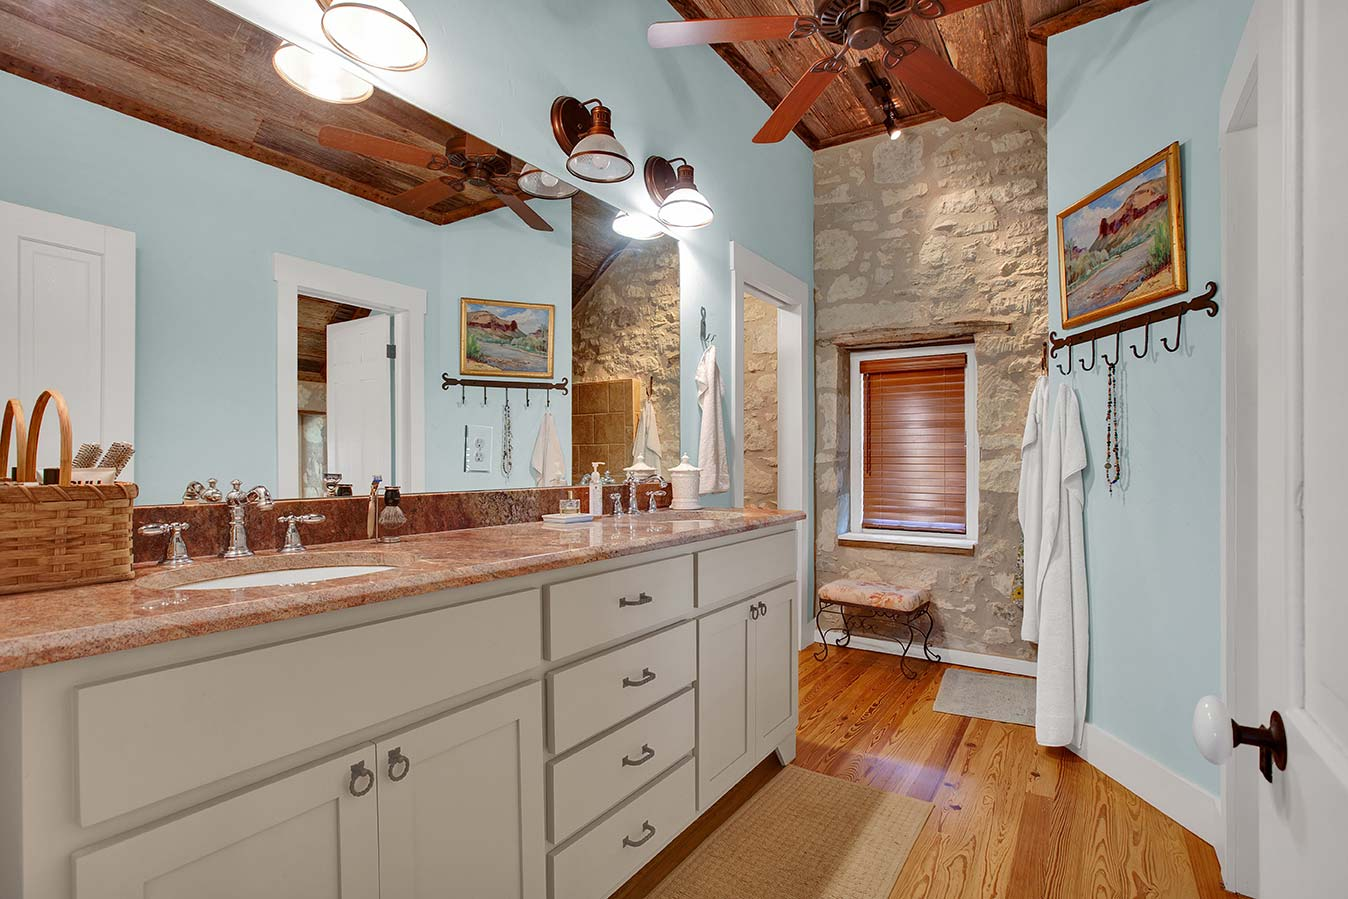 fredericksburg-realty-squaw-creek-ranch-real-estate-land-for-sale-home-house-historic-7.jpg